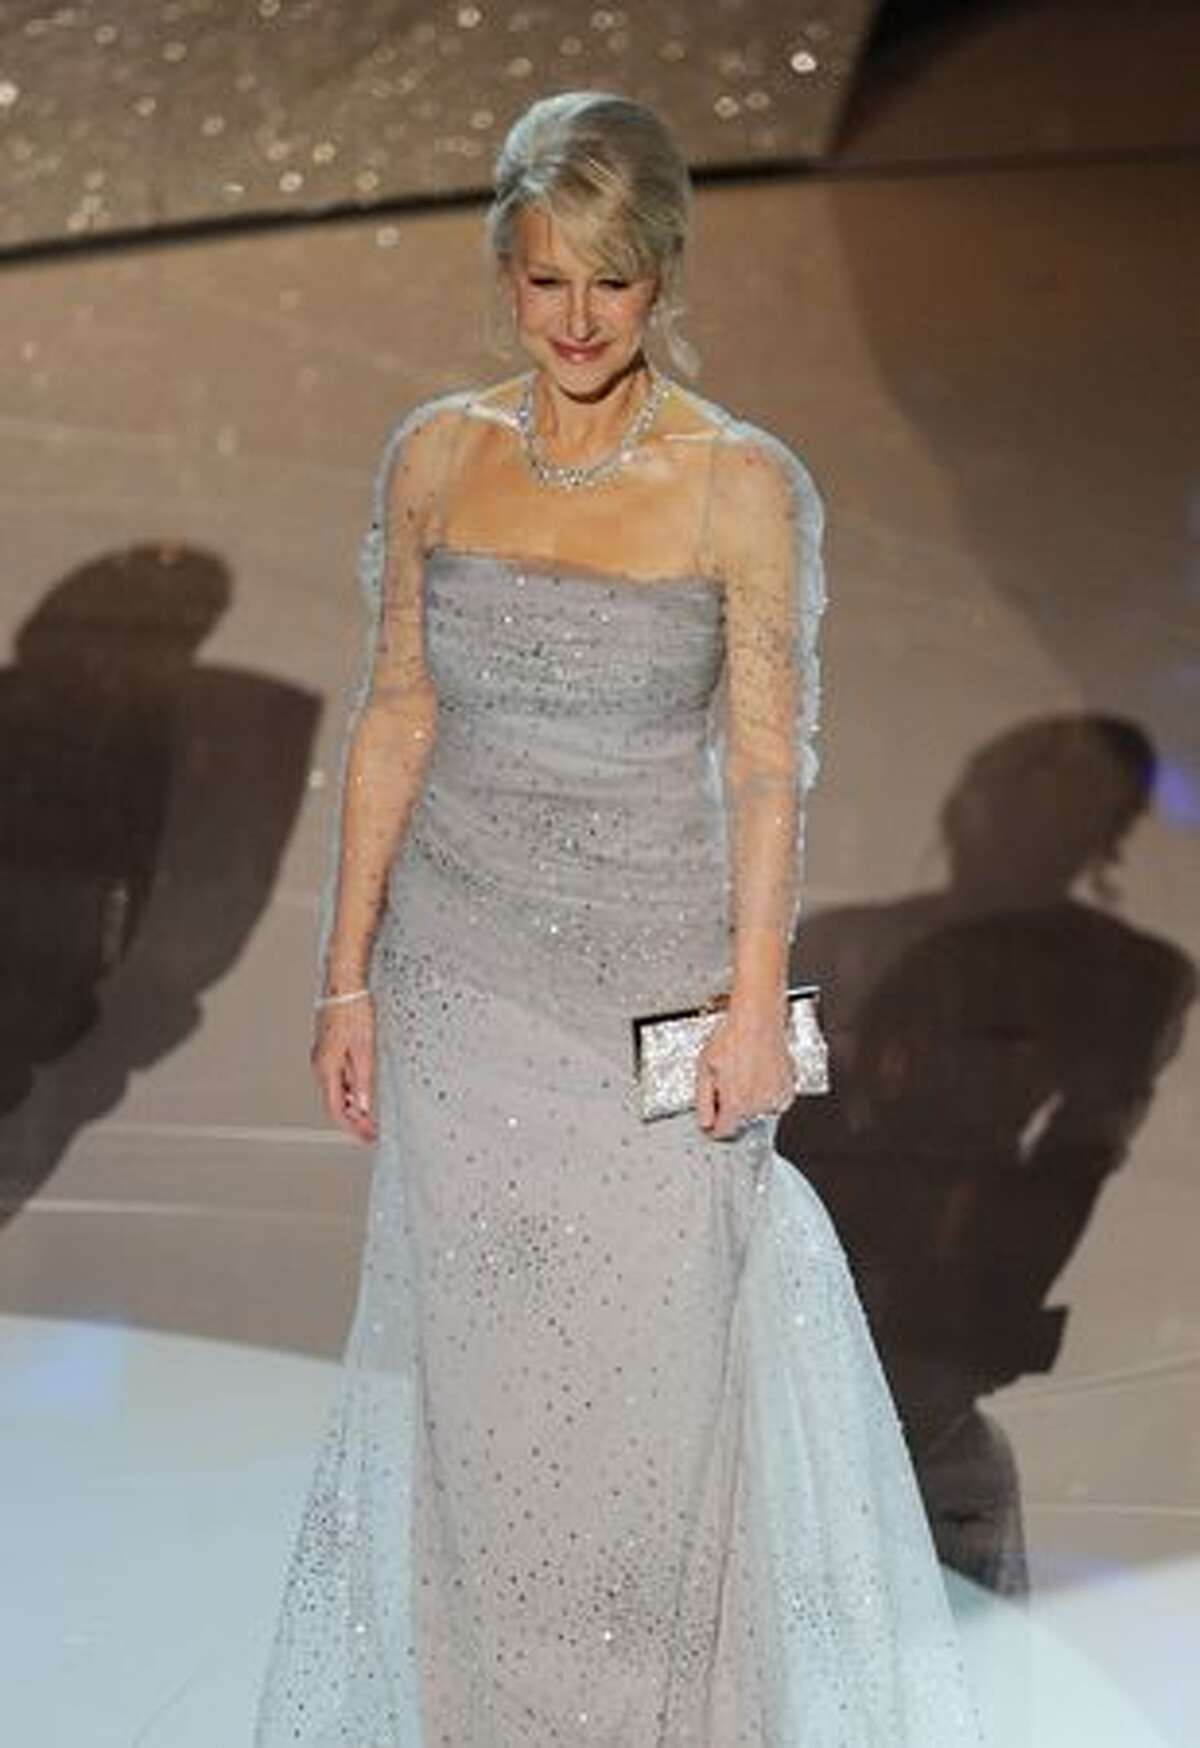 Actress Helen Mirren onstage during the 82nd Annual Academy Awards held at Kodak Theatre in Hollywood, California.